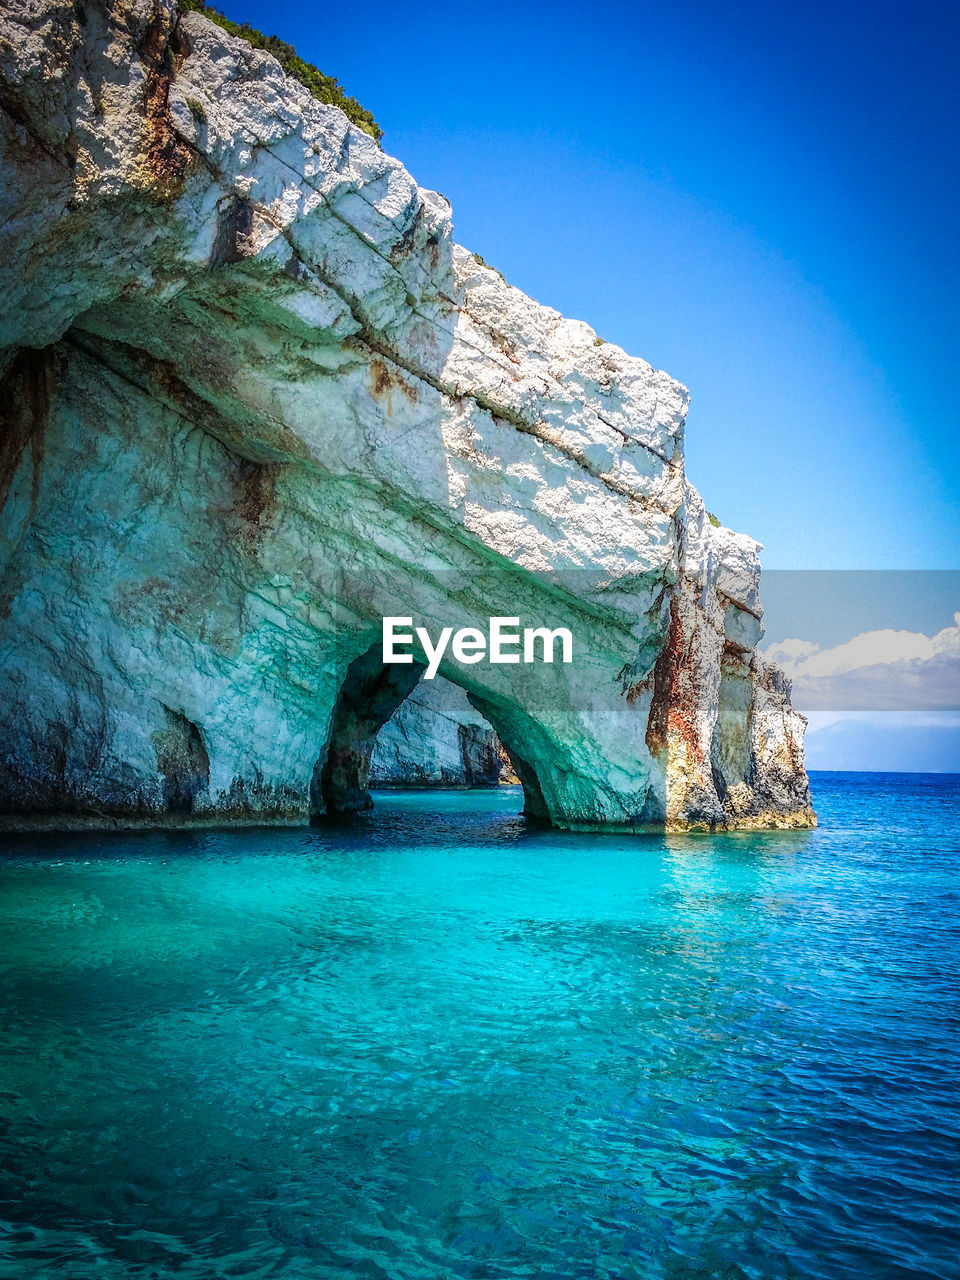 The blue caves on the greek ionian island of zakynthos